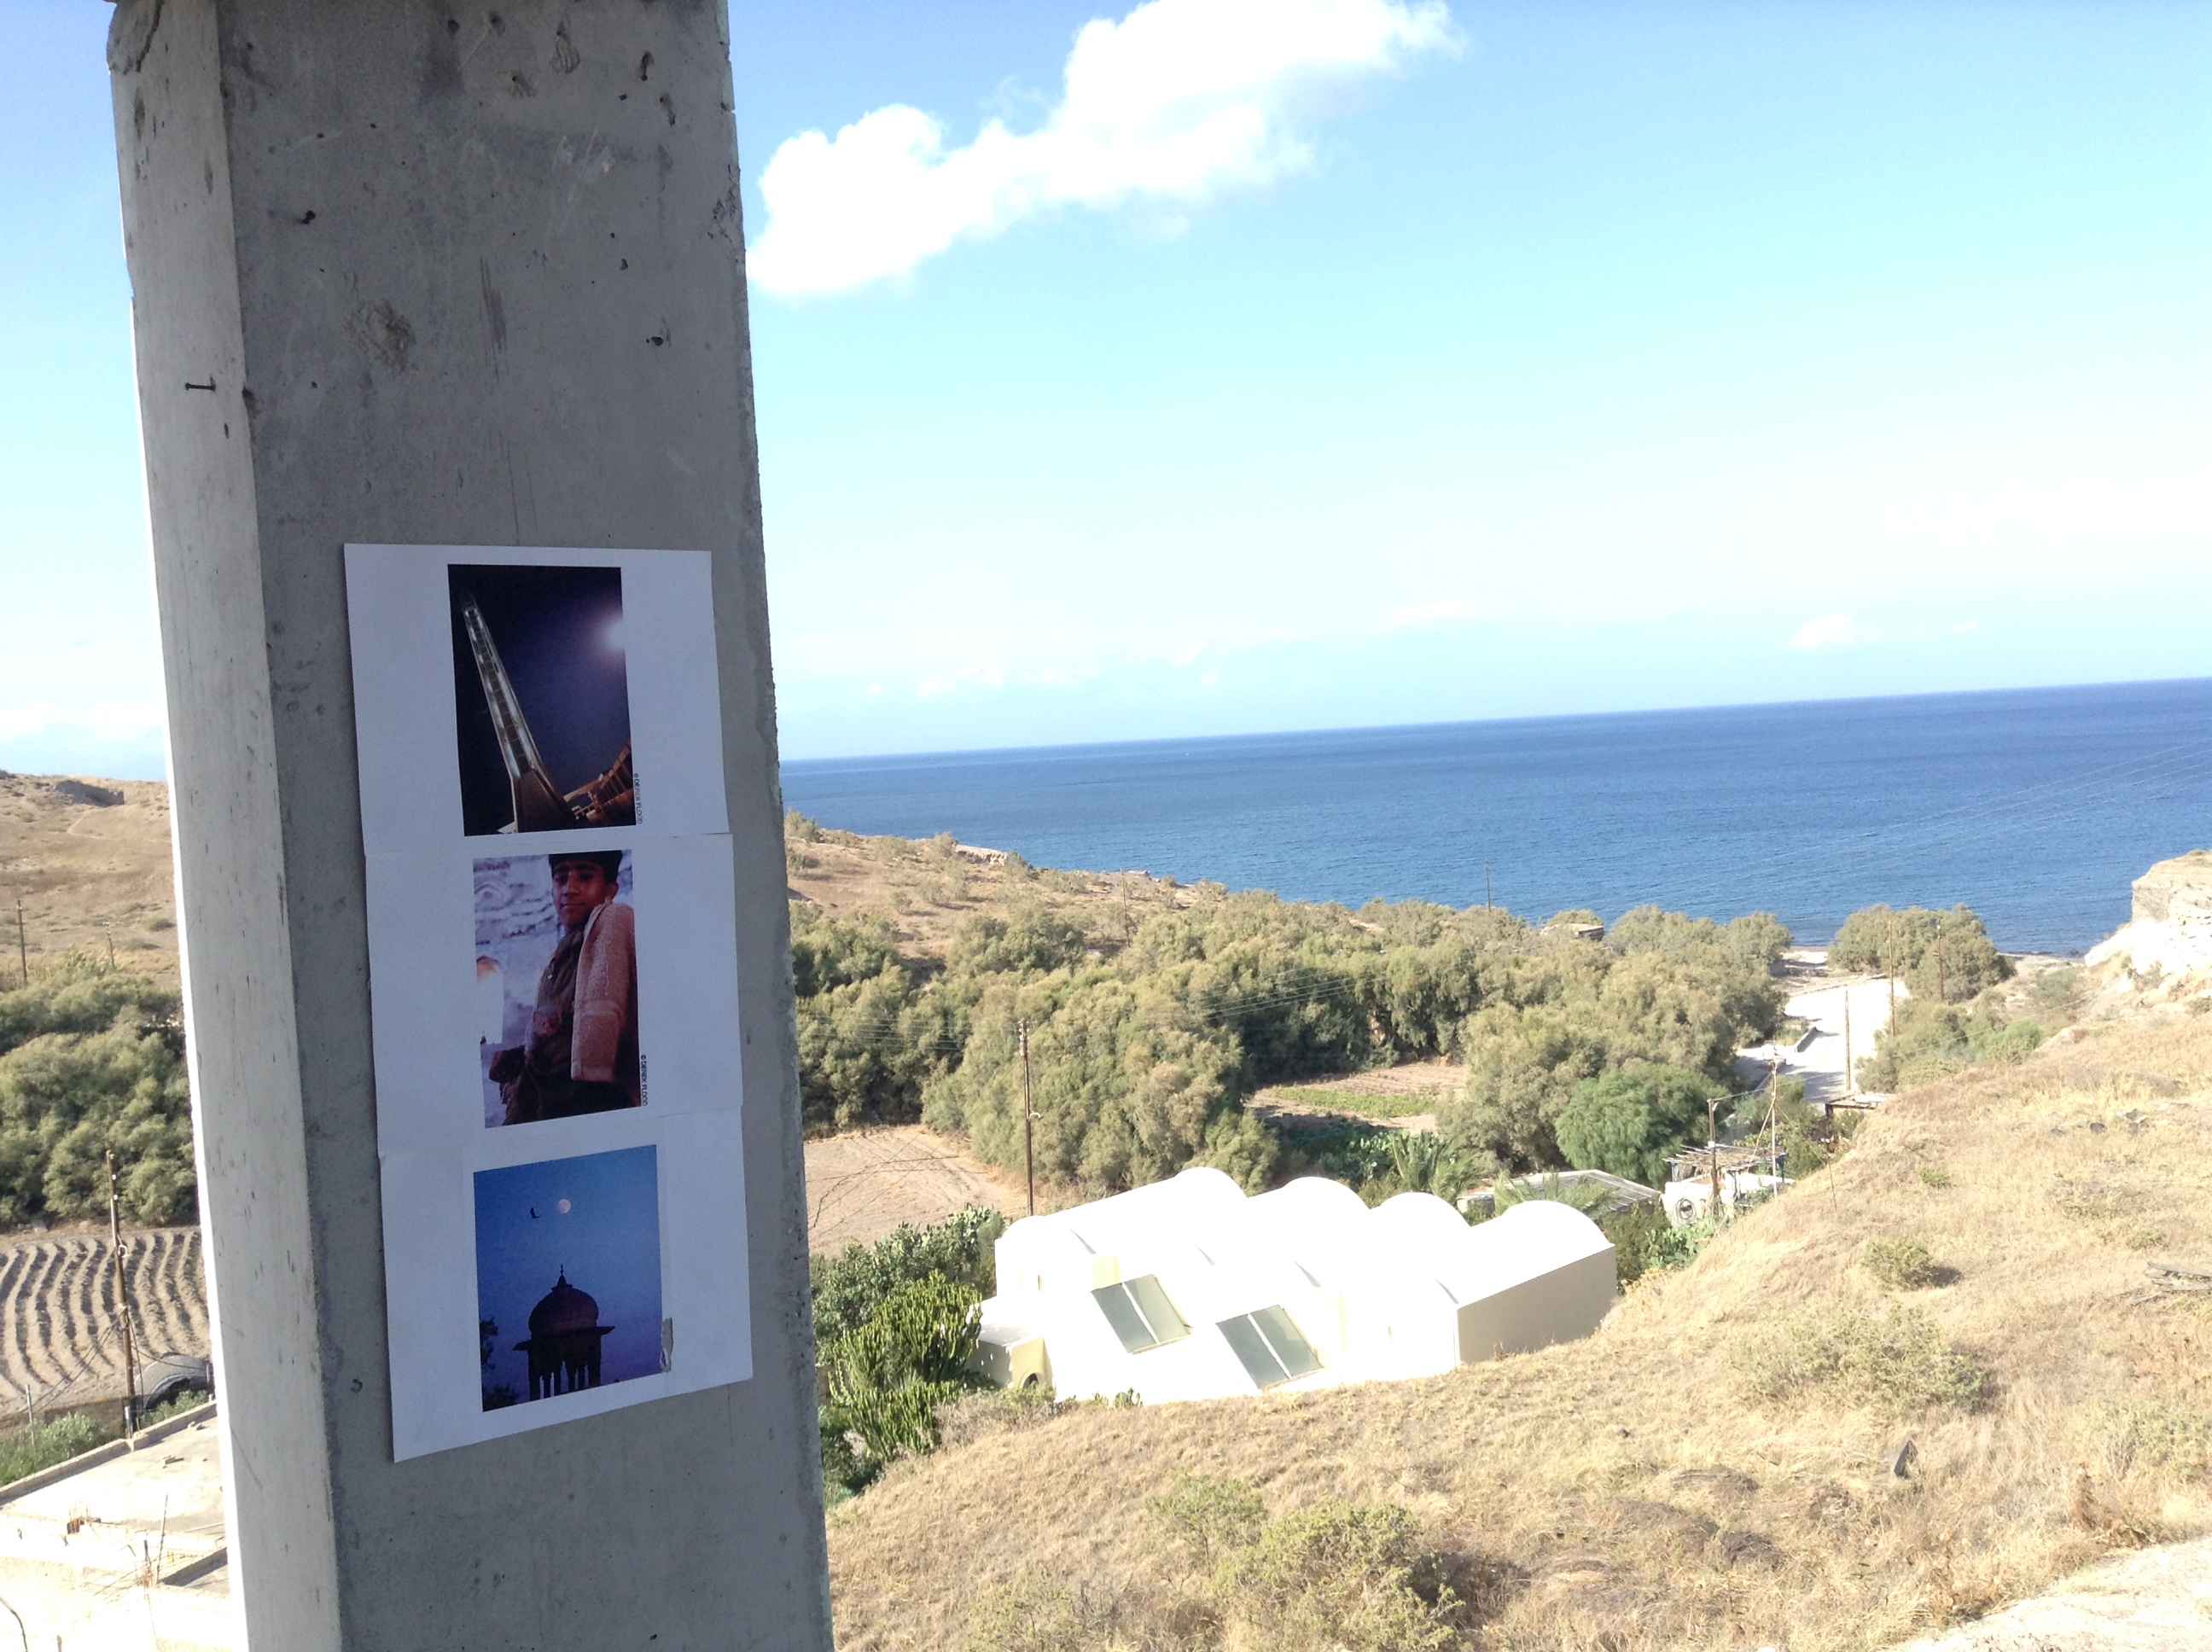 I did another installation in an unfinished hotel near Monolithos Beach. ©2014 Derek Henry Flood